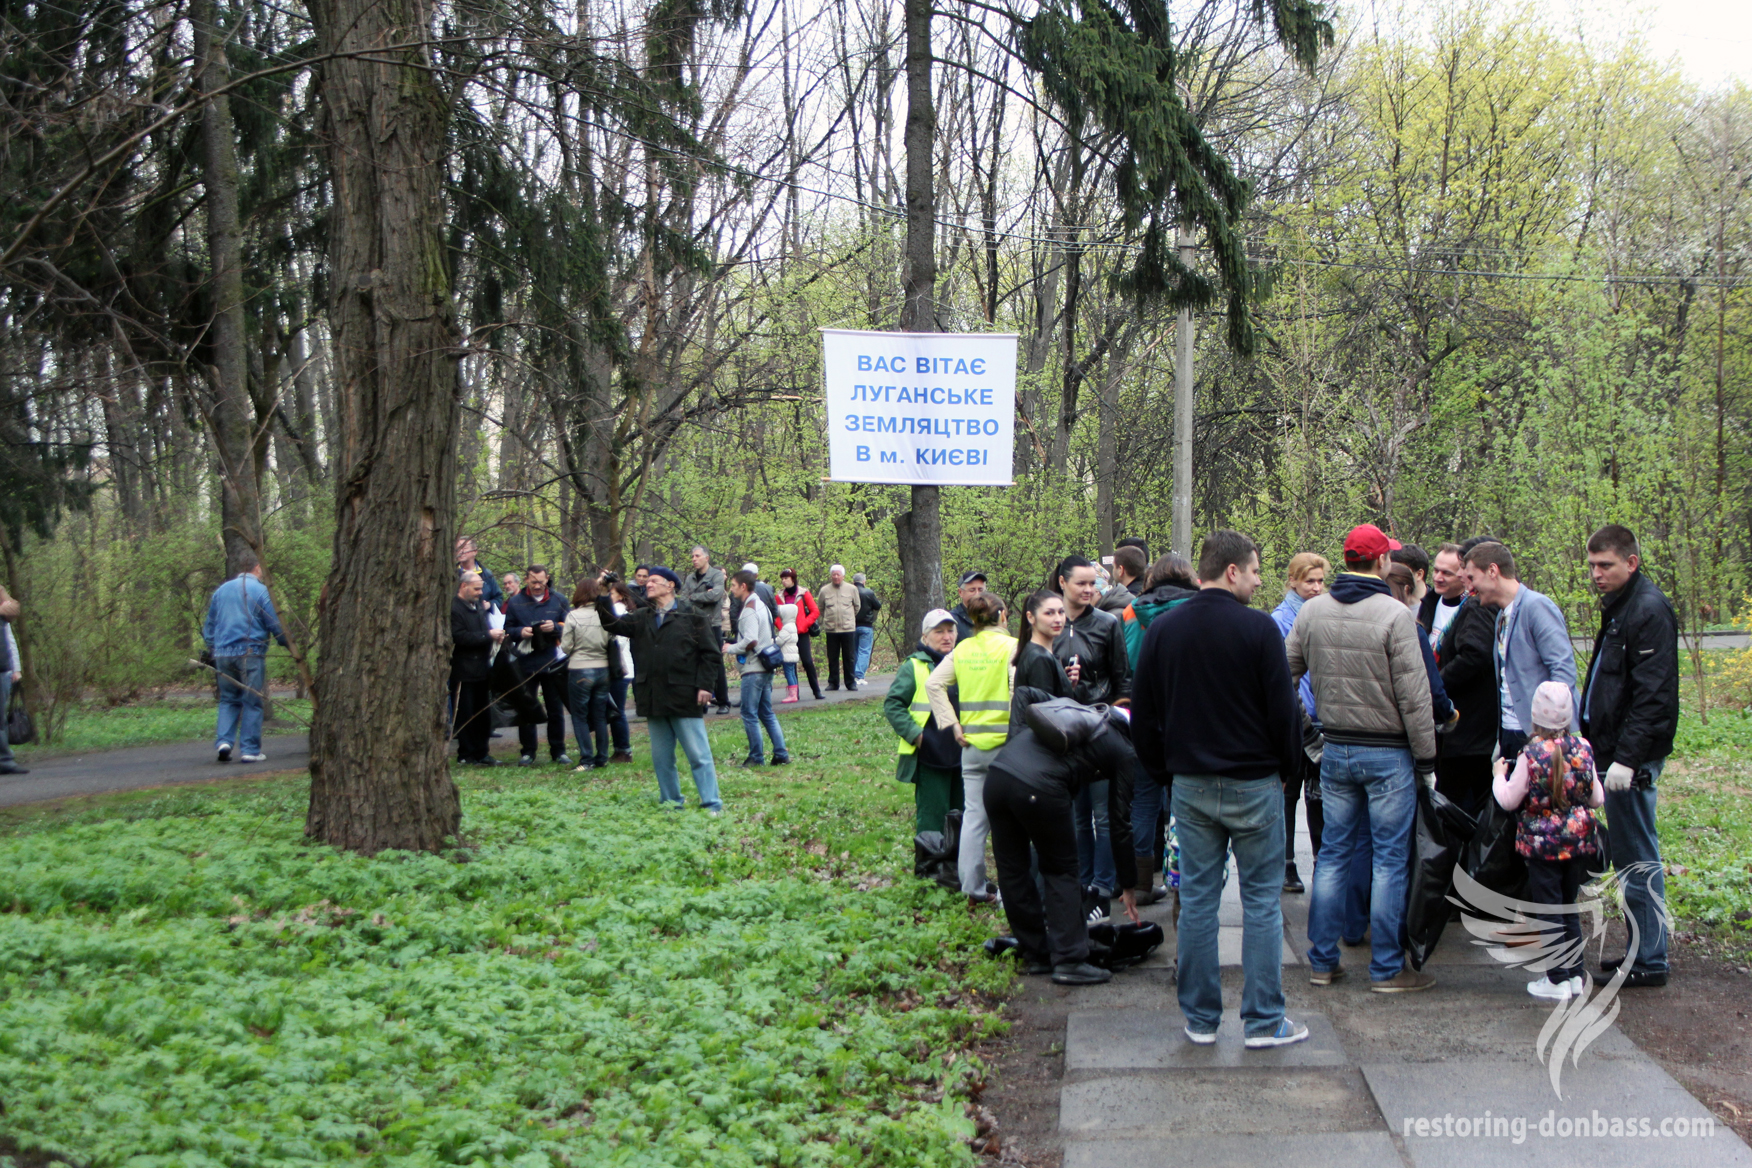 IDPs from Donbas during Sabbatarian in Kiev park, April 25, 2015